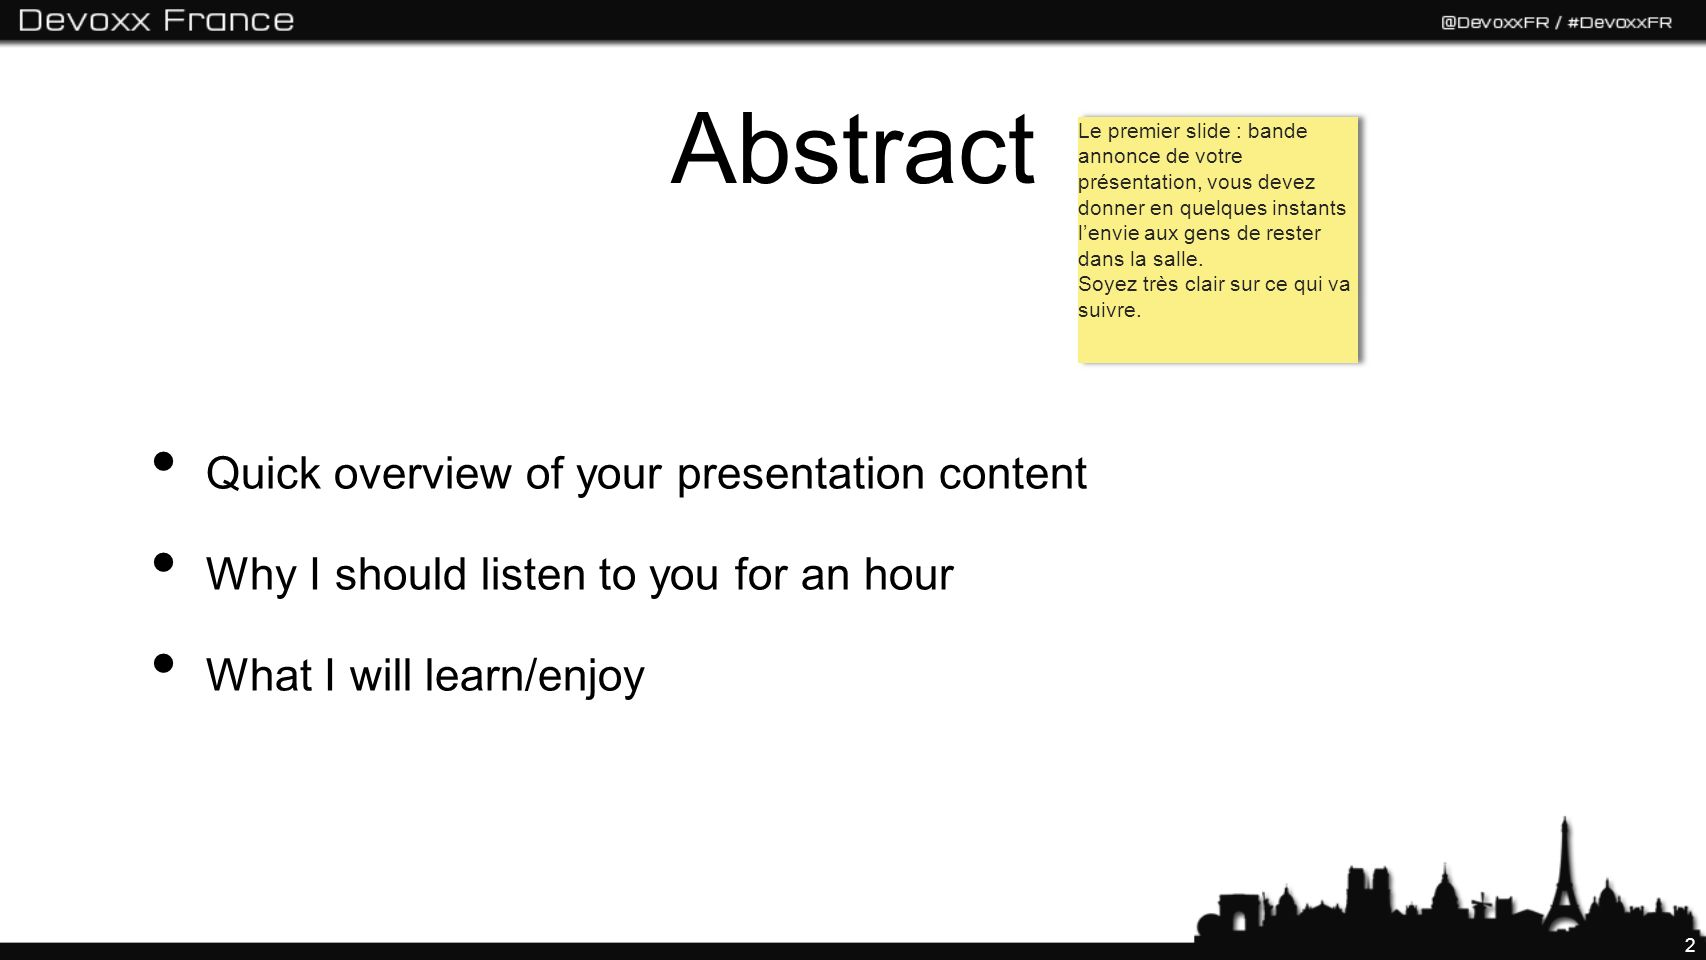 2 Abstract Quick overview of your presentation content Why I should listen to you for an hour What I will learn/enjoy Le premier slide : bande annonce